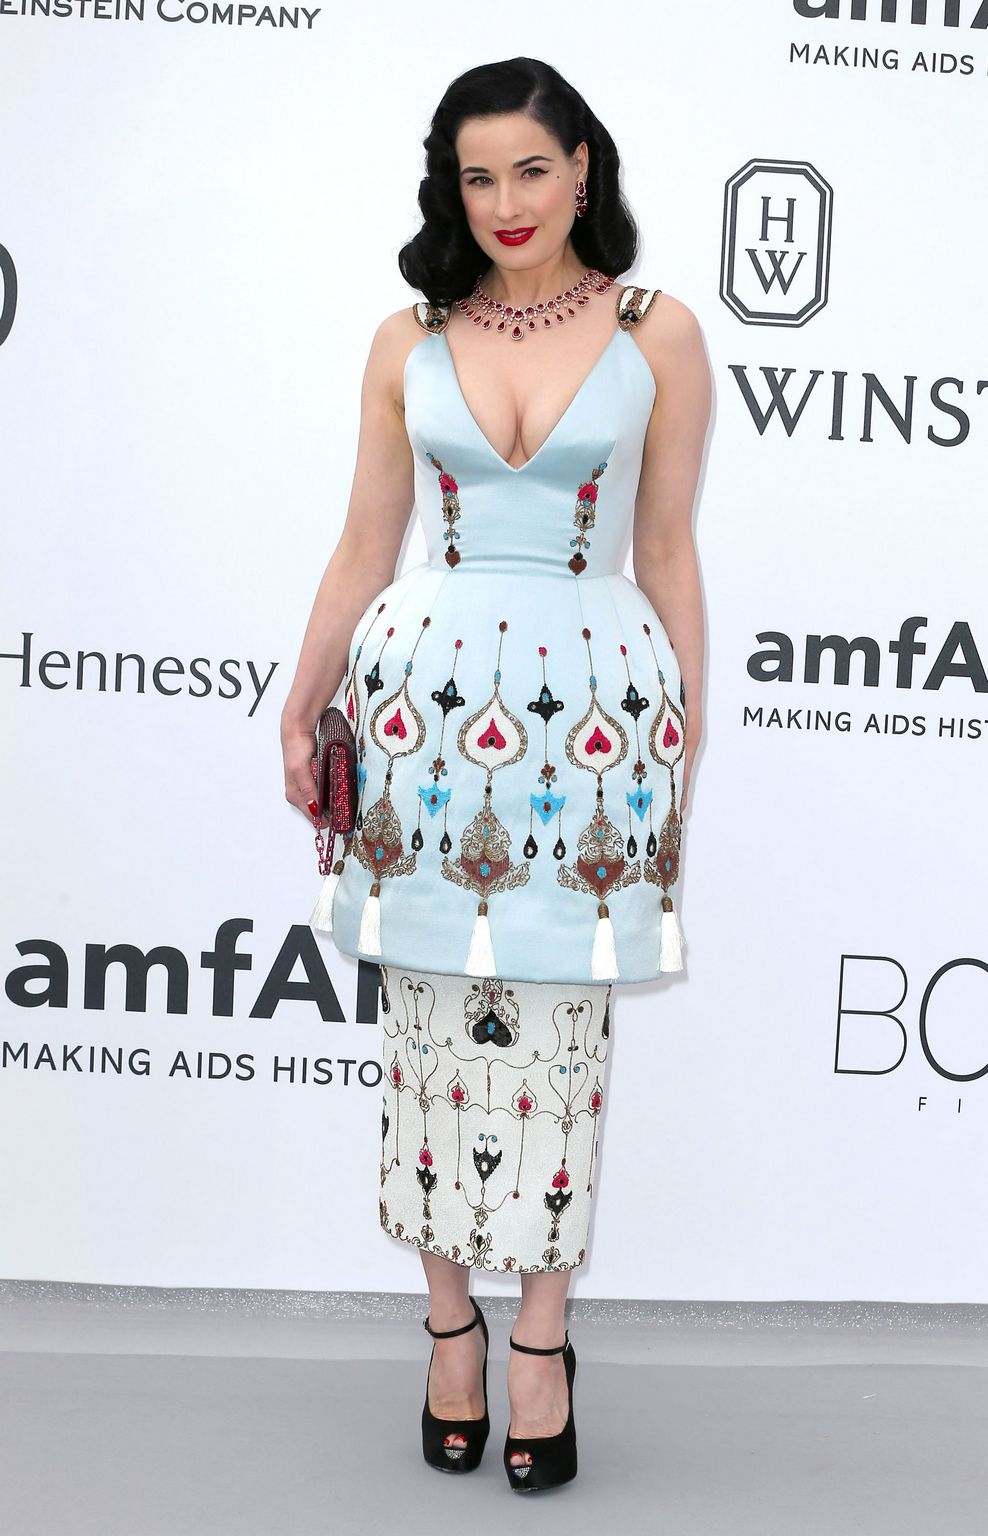 Dita Von Teese at amfARs Cinema Against AIDS Gala-3